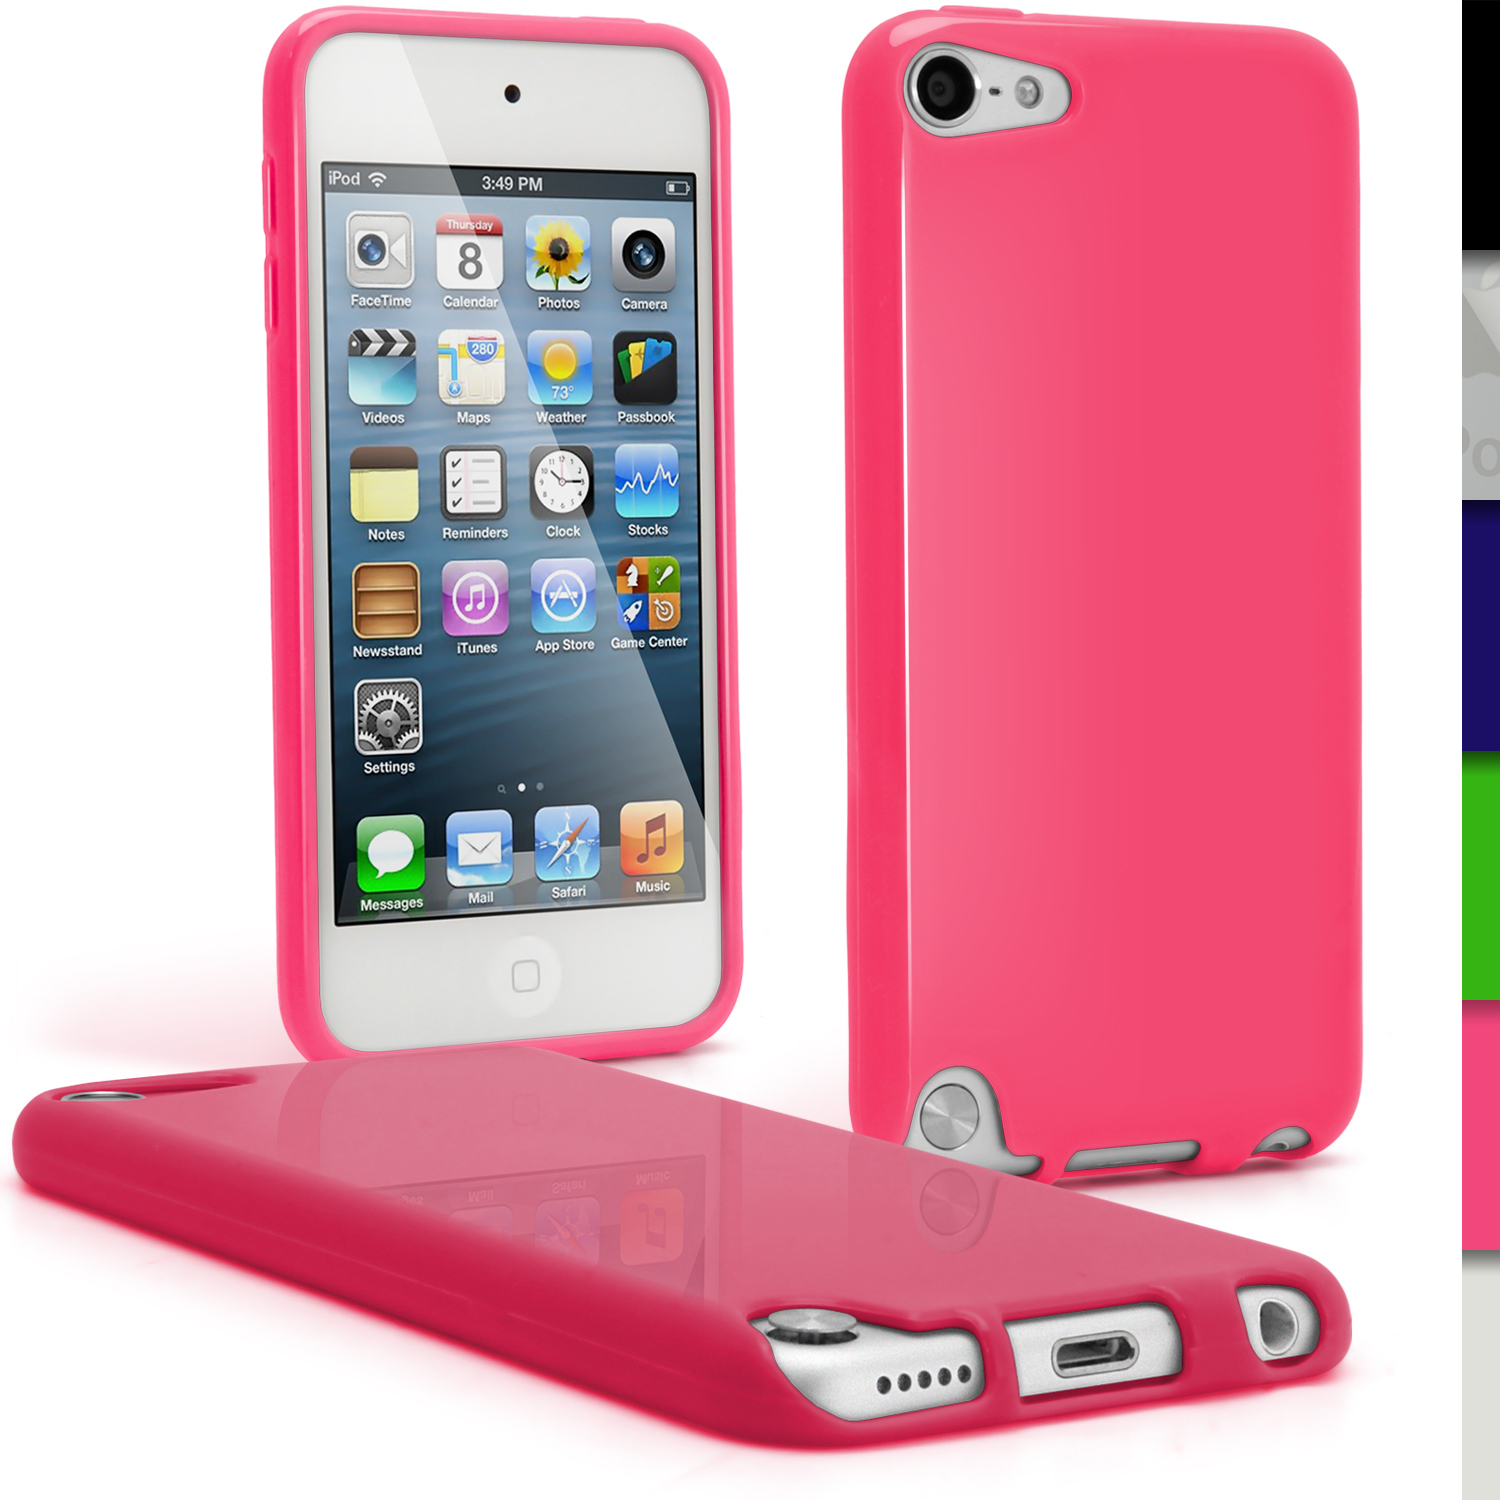 iGadgitz Pink Glossy Crystal Gel Skin TPU Case Cover for Apple iPod Touch 6th & 5th Generation + Screen Protector